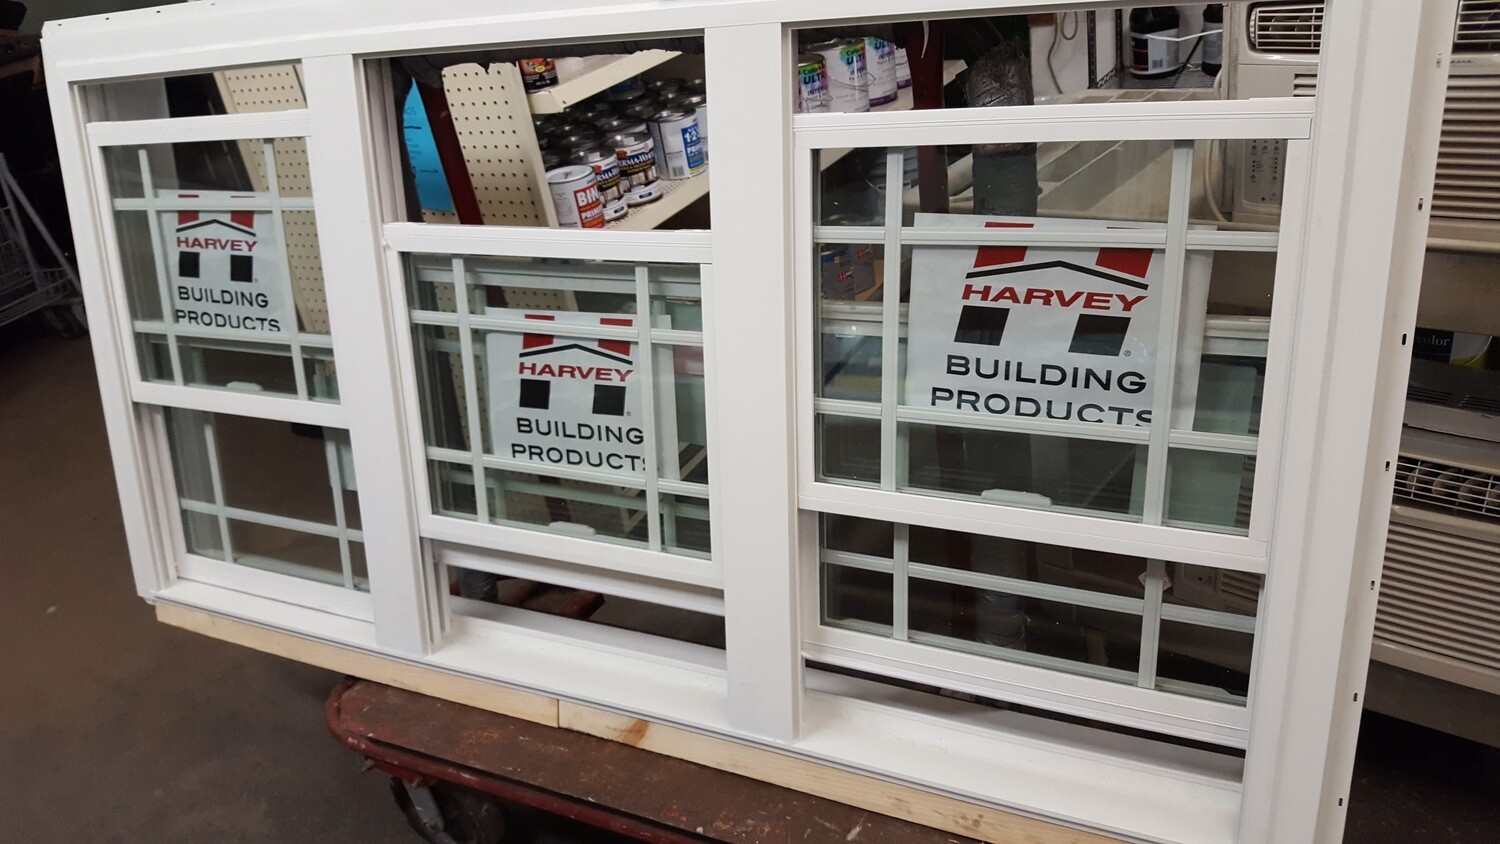 Harvey triple DH window W0989 (GR)